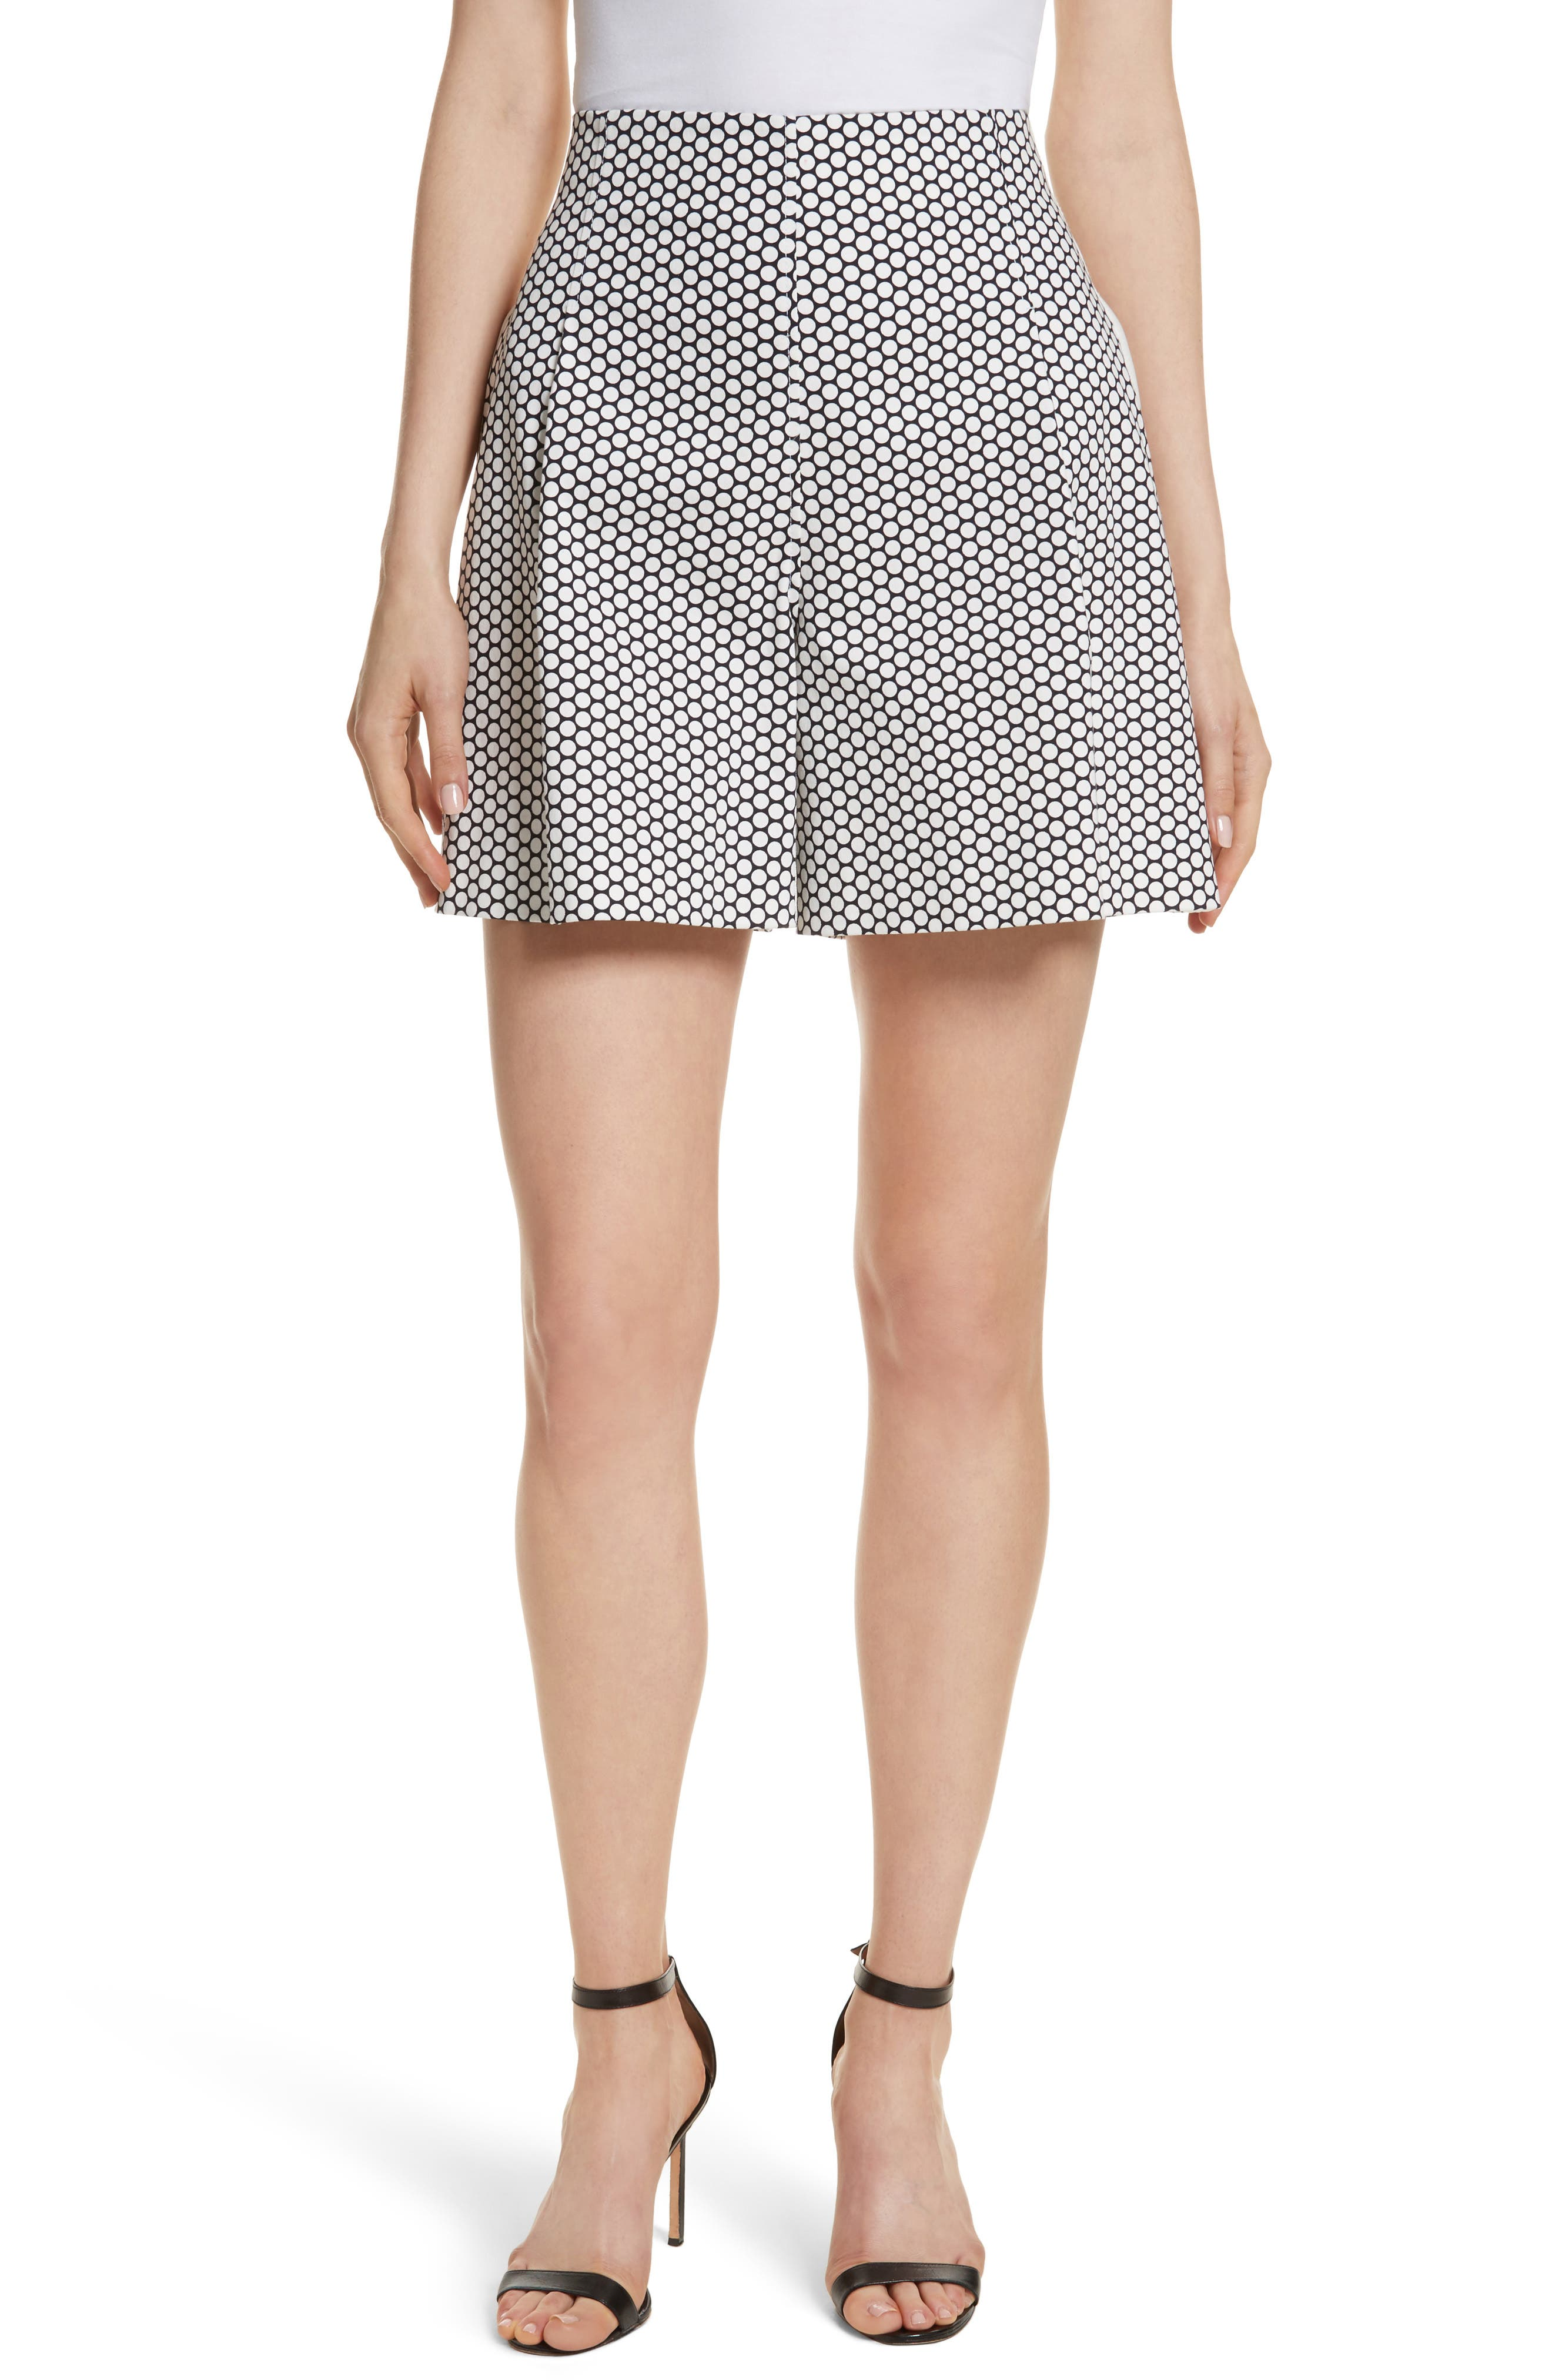 Diane von Furstenberg Dot High Waist Stretch Cotton Shorts,                             Main thumbnail 1, color,                             Rowe Dot Ivory